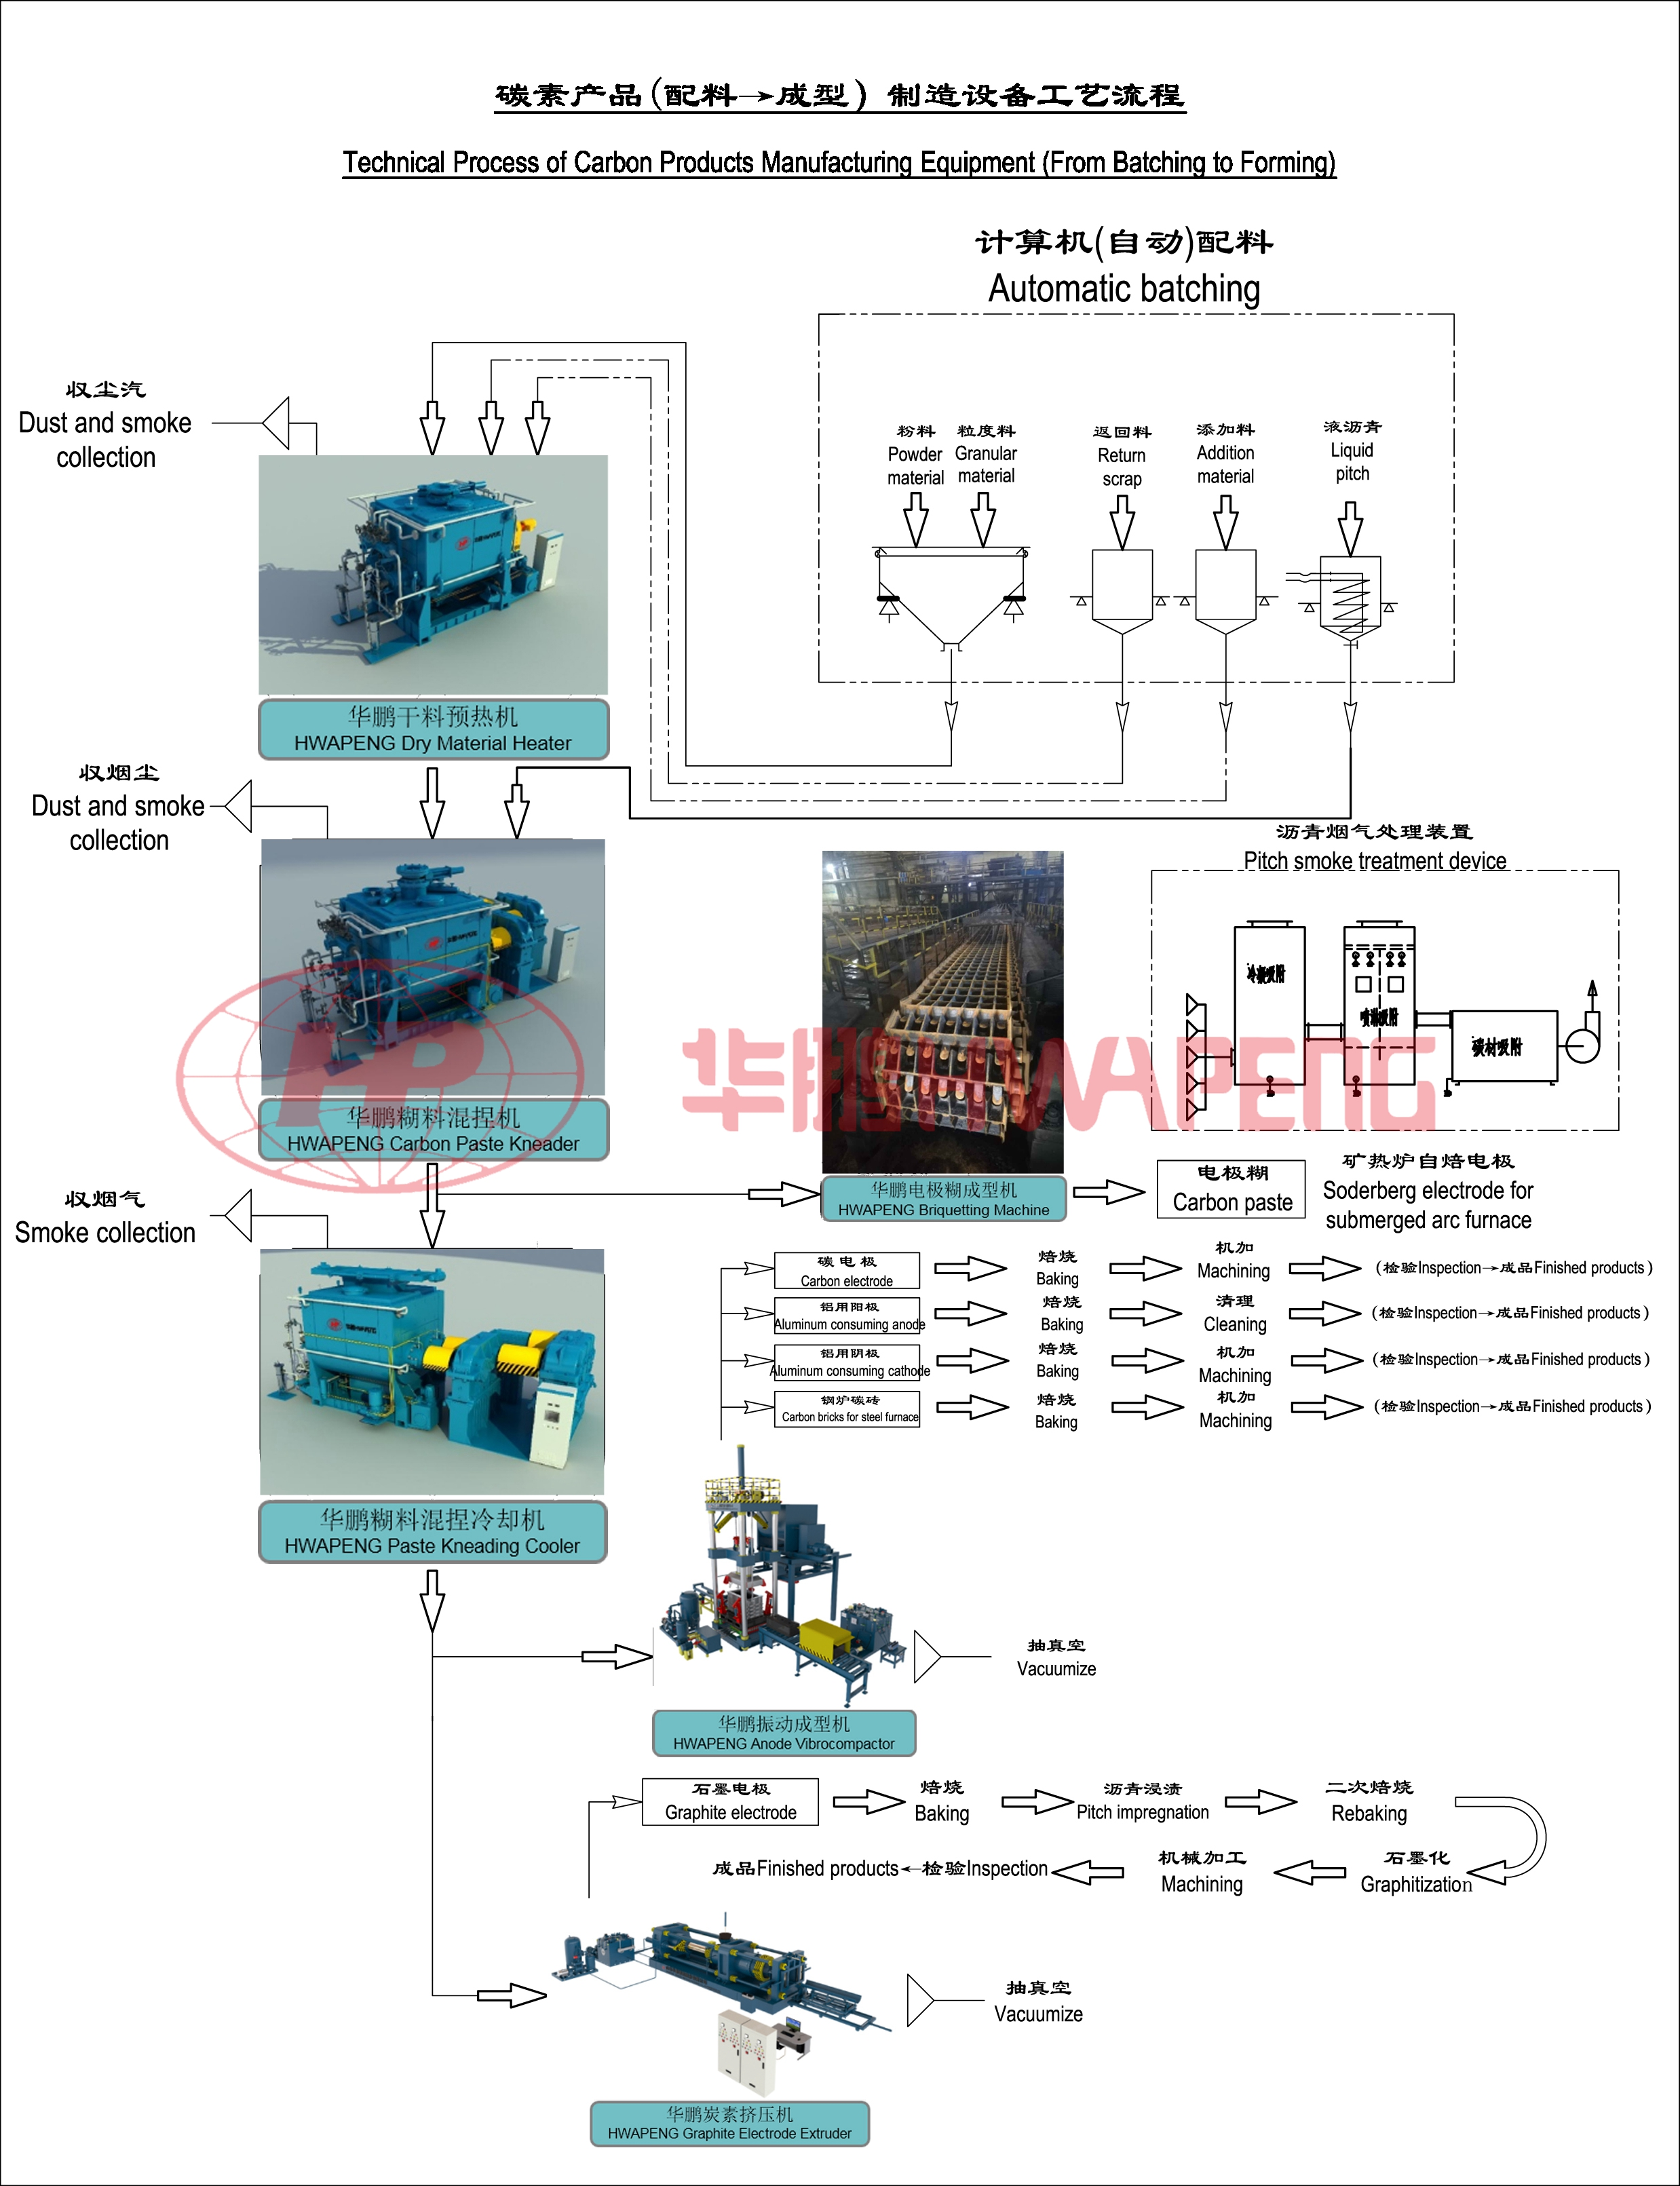 Technical Process of Carbon Products Manufacturing Equipment(From Batching to Forming)